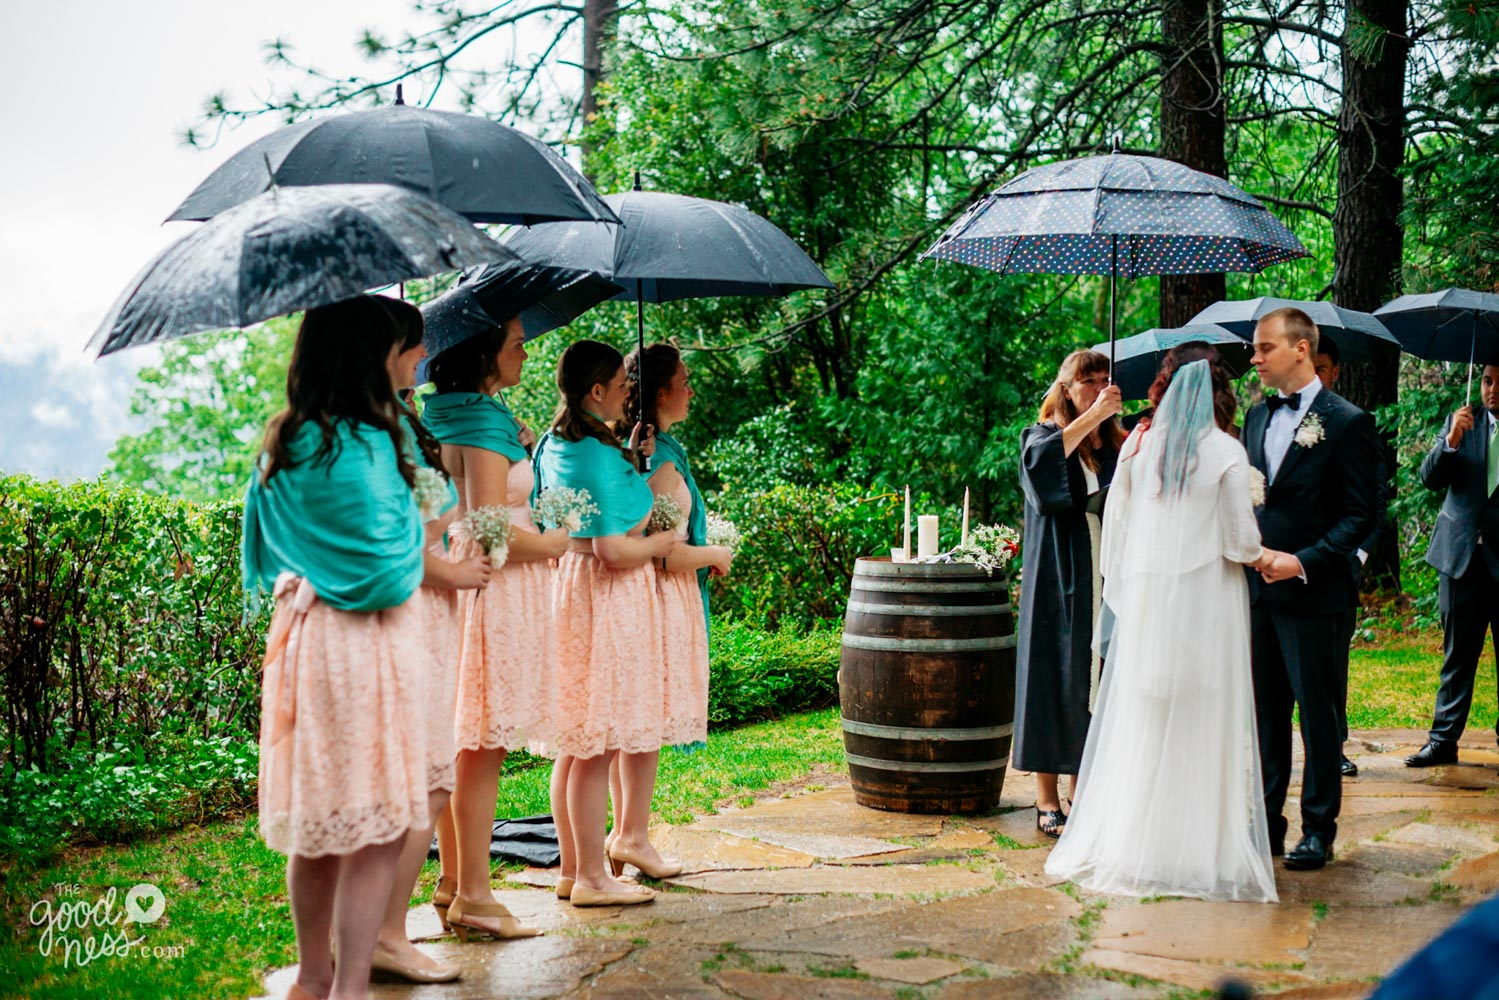 Minister and bridesmaids holding umbrellas during rainy wedding ceremony in Foresthill, California.